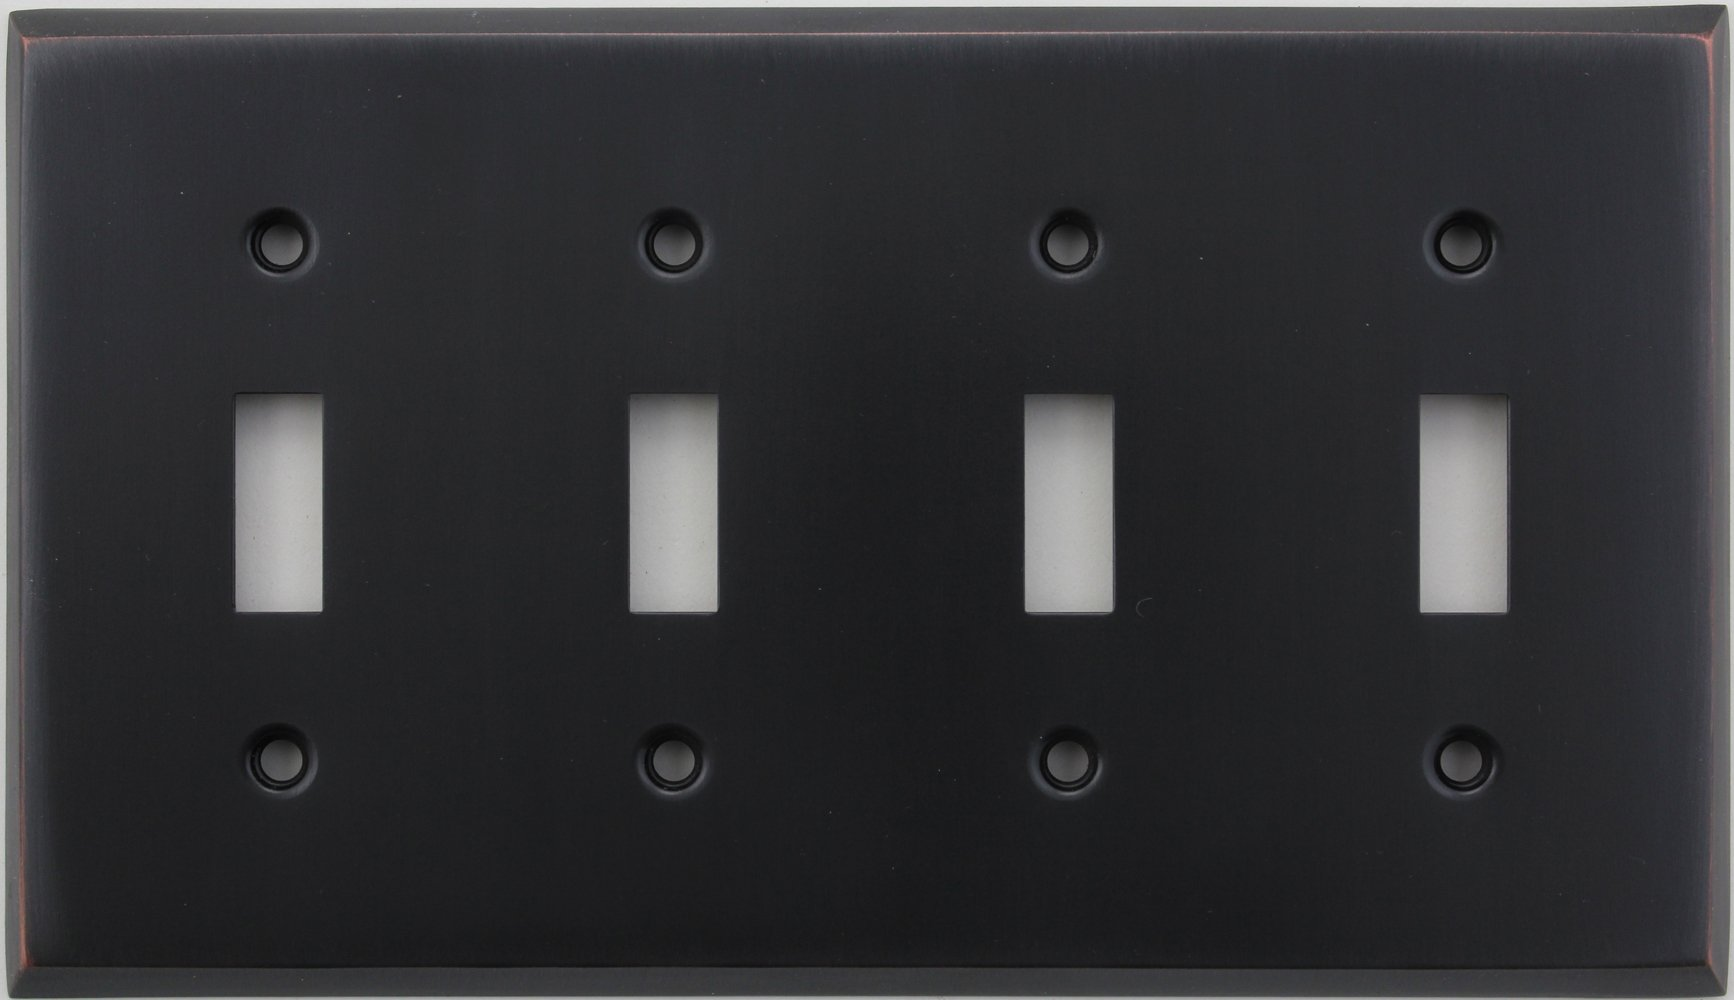 Classic Accents Stamped Steel Oil Rubbed Bronze Four Gang Toggle Light Switch Wall Plate by Classic Accents